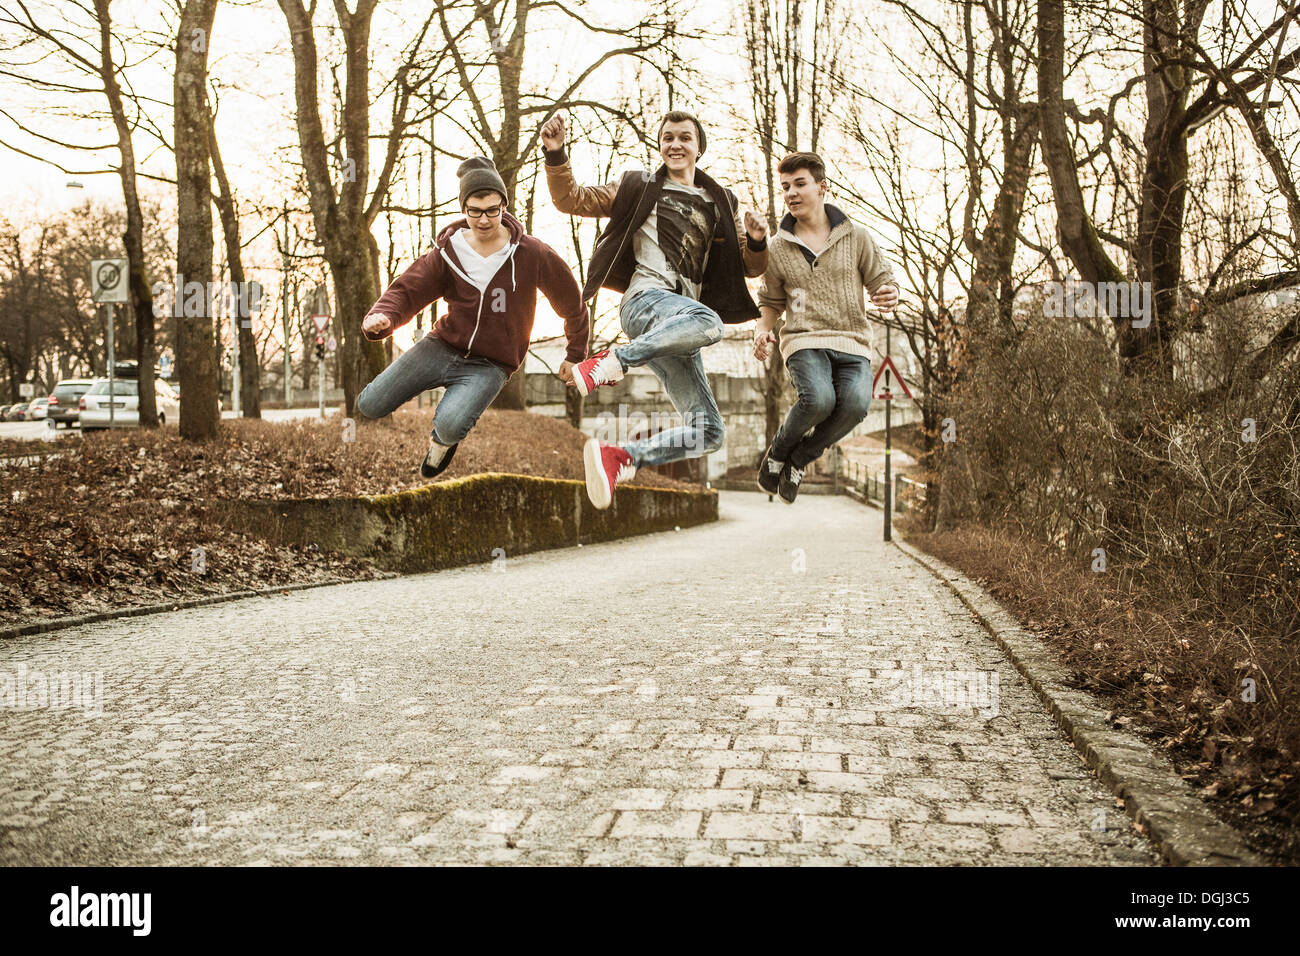 Three teenage boys jumping in park - Stock Image